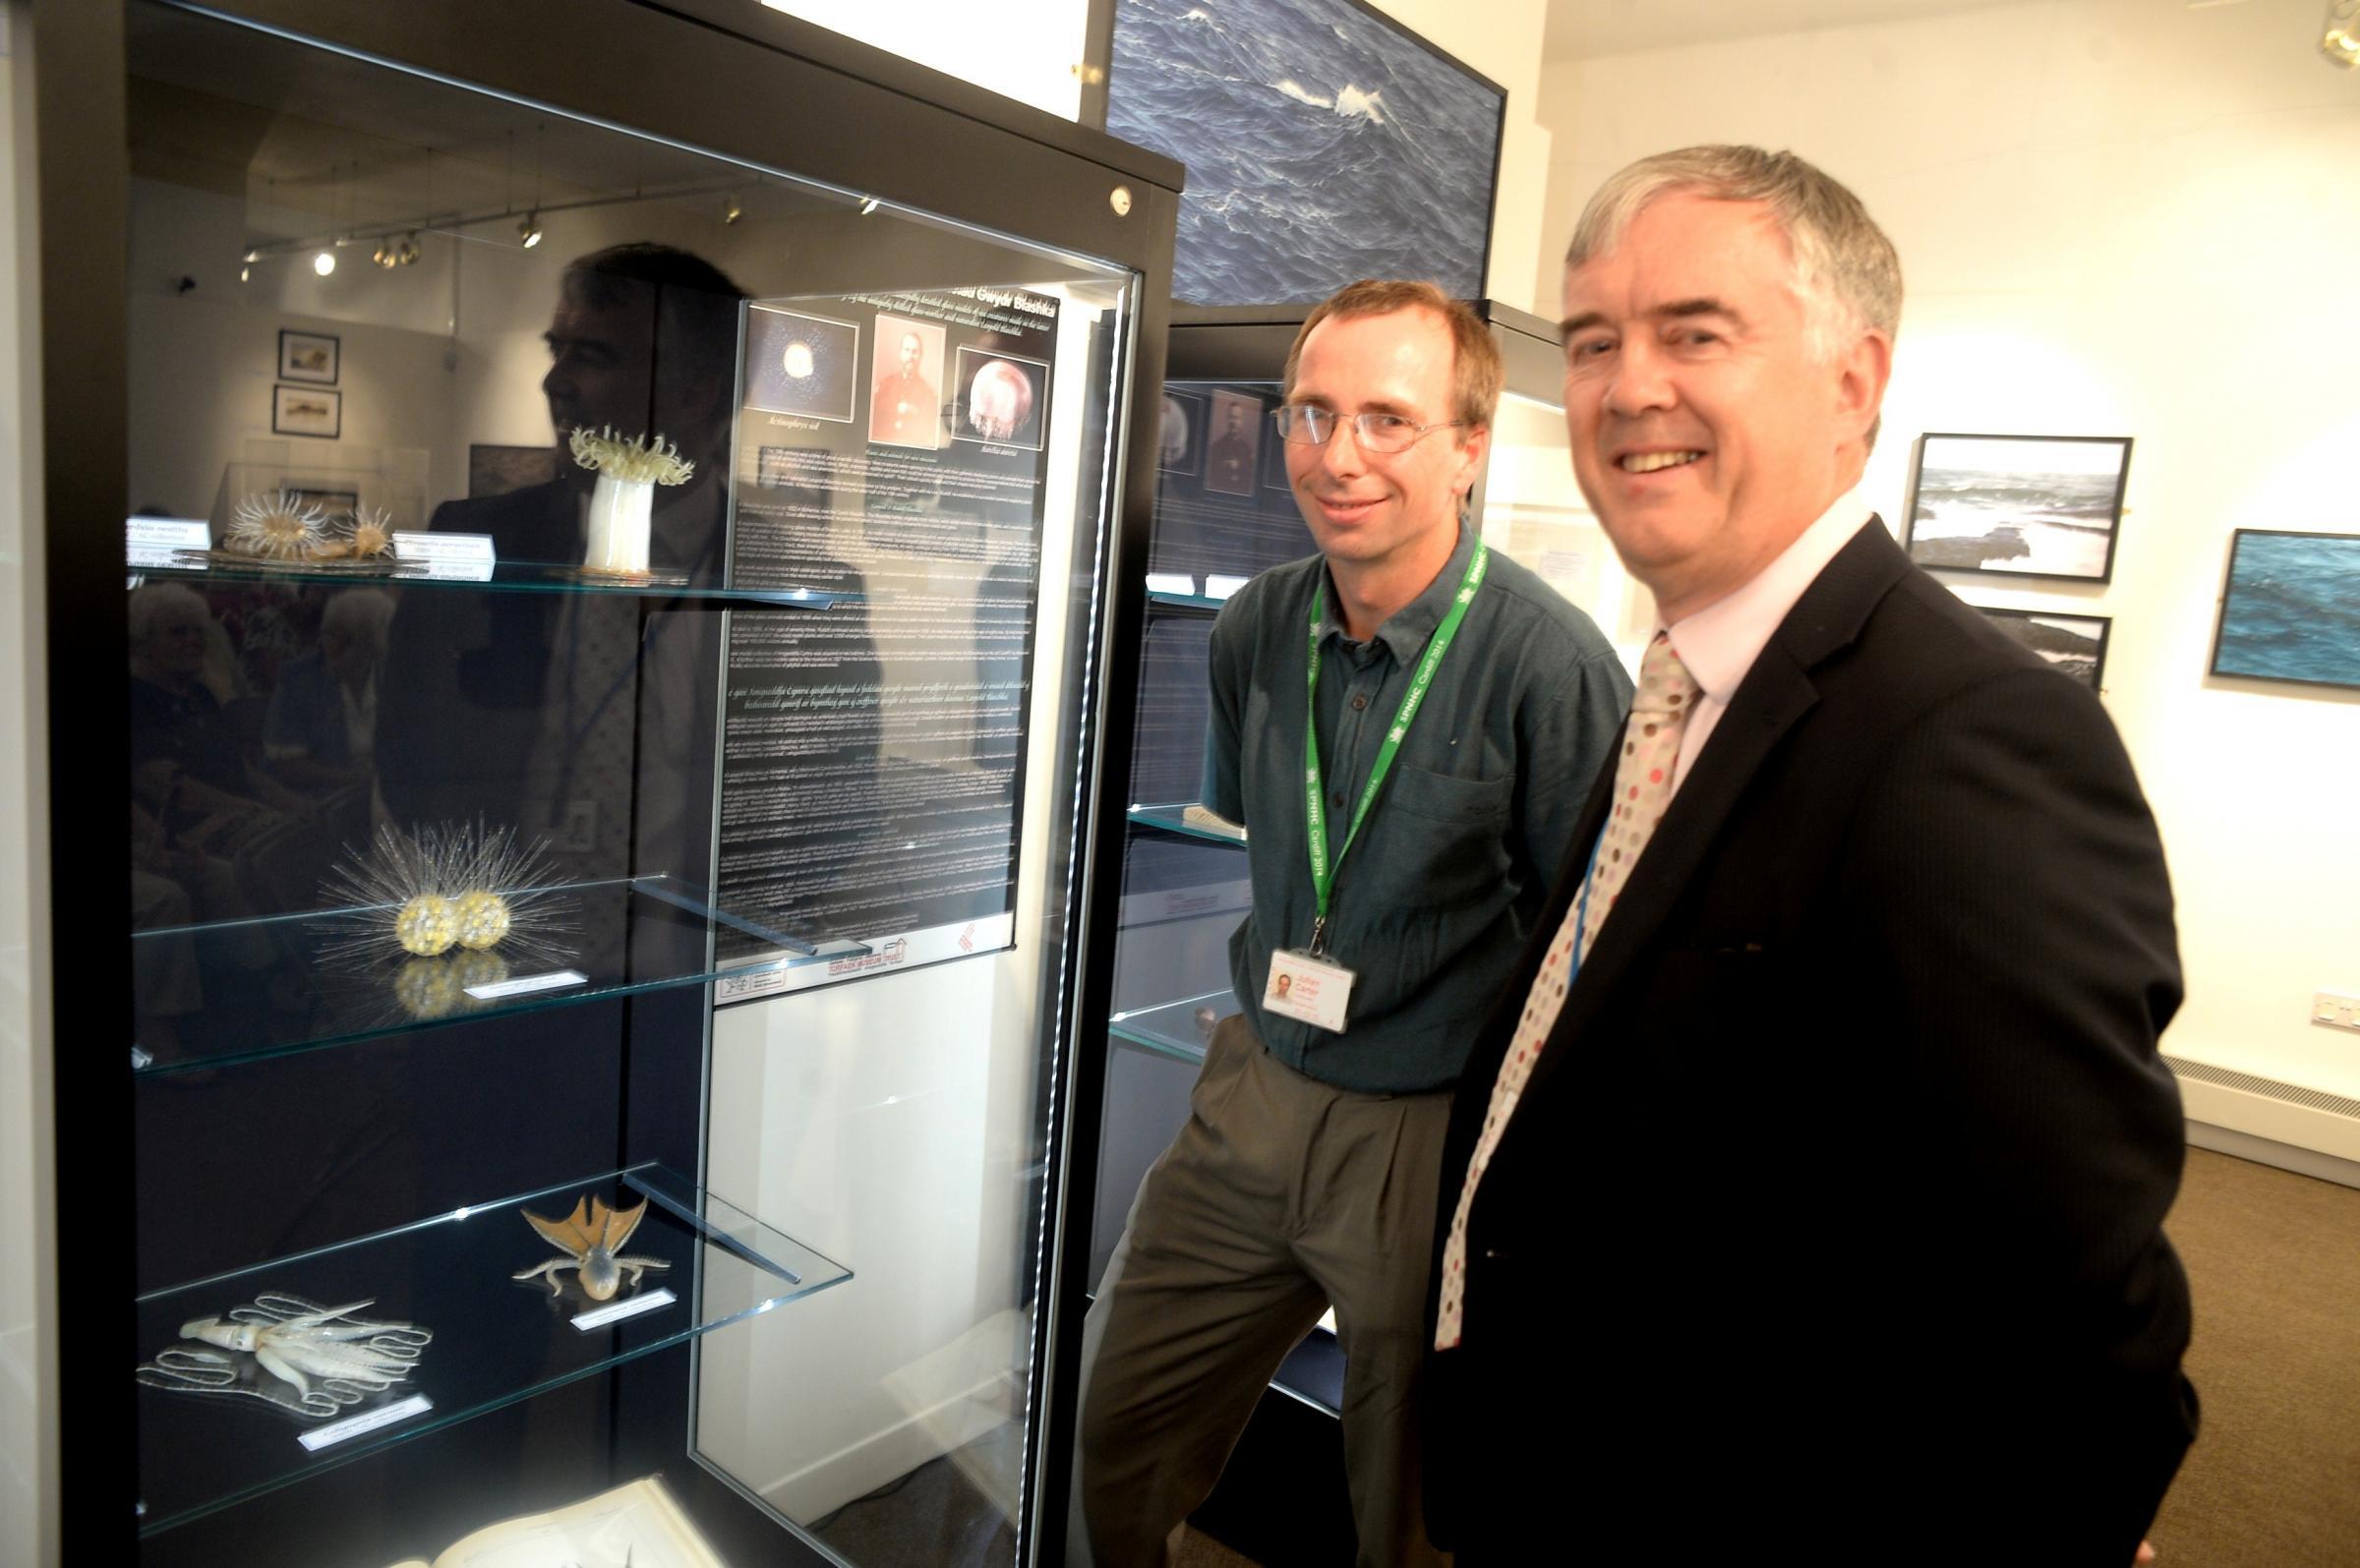 Looking at the Blaschka glass exhibit at Pontypool museum are Julian Carter, (lt), and Mark Richards, deputy director general and director of operations at the National Museum of Wales (8357687)